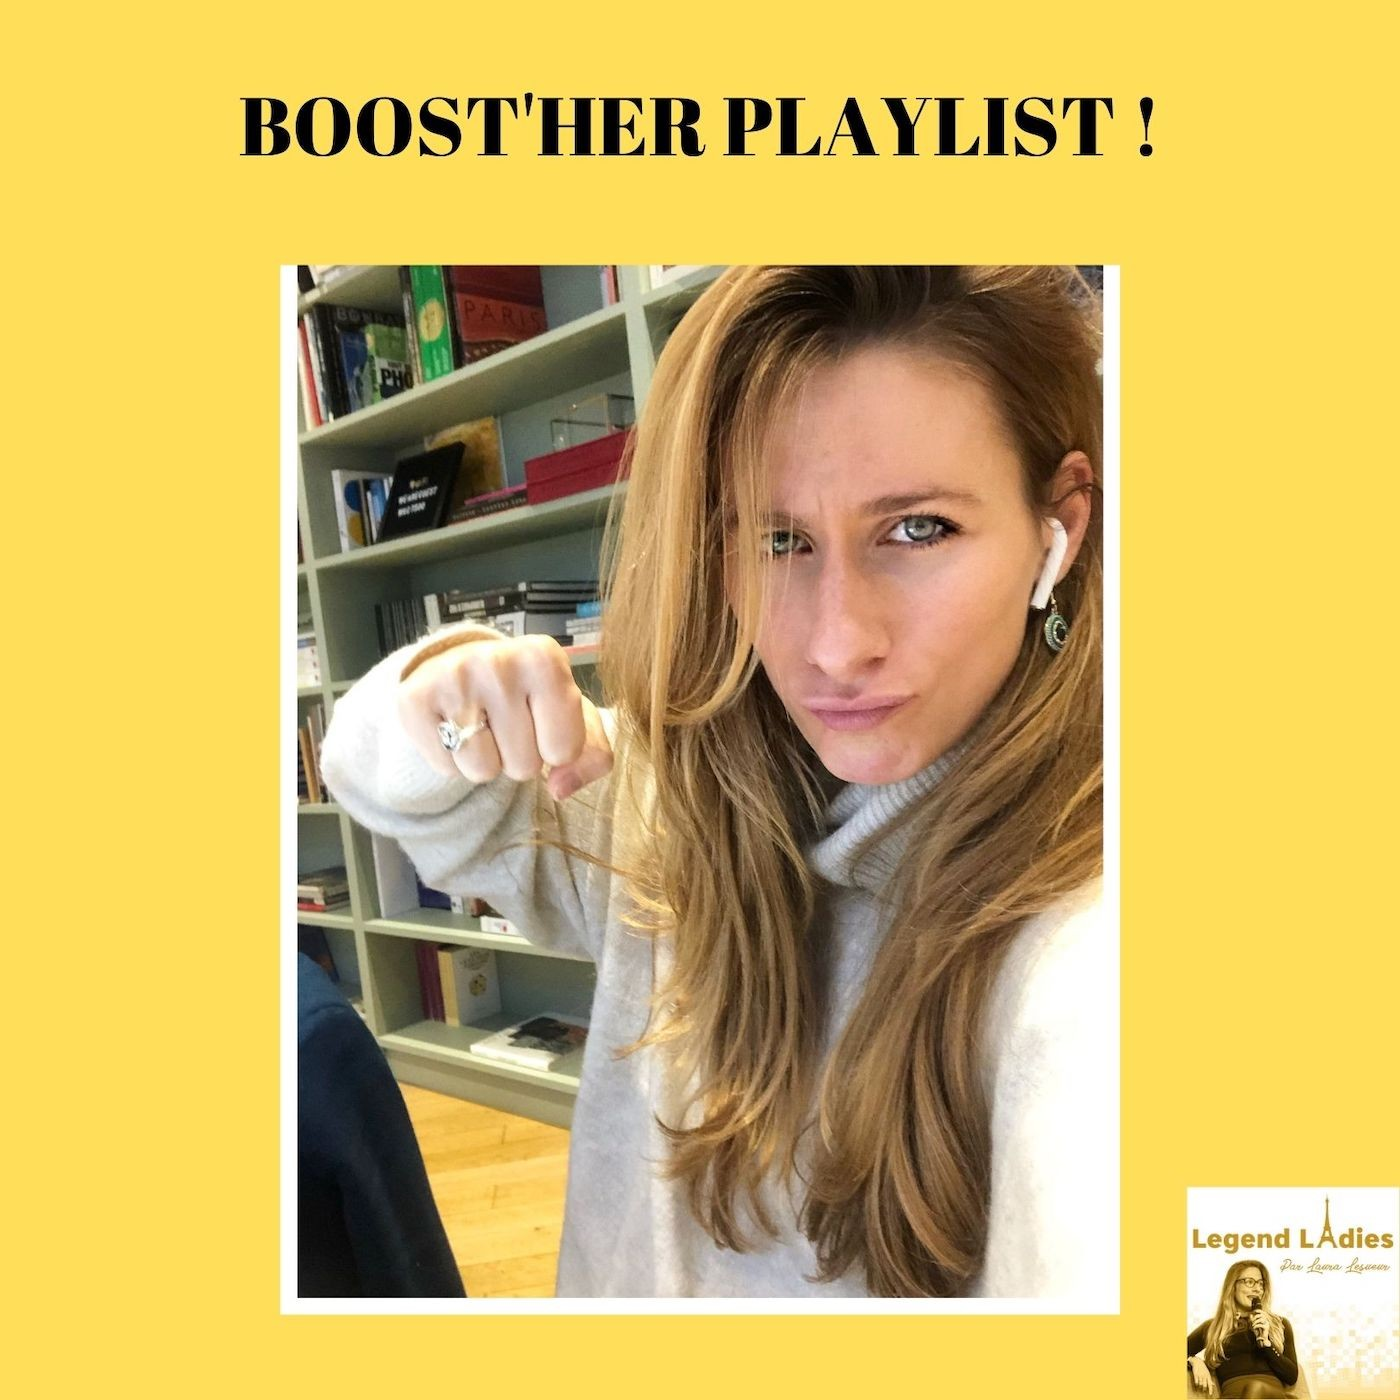 ⚡️THE BOOST'HER PLAYLIST⚡️